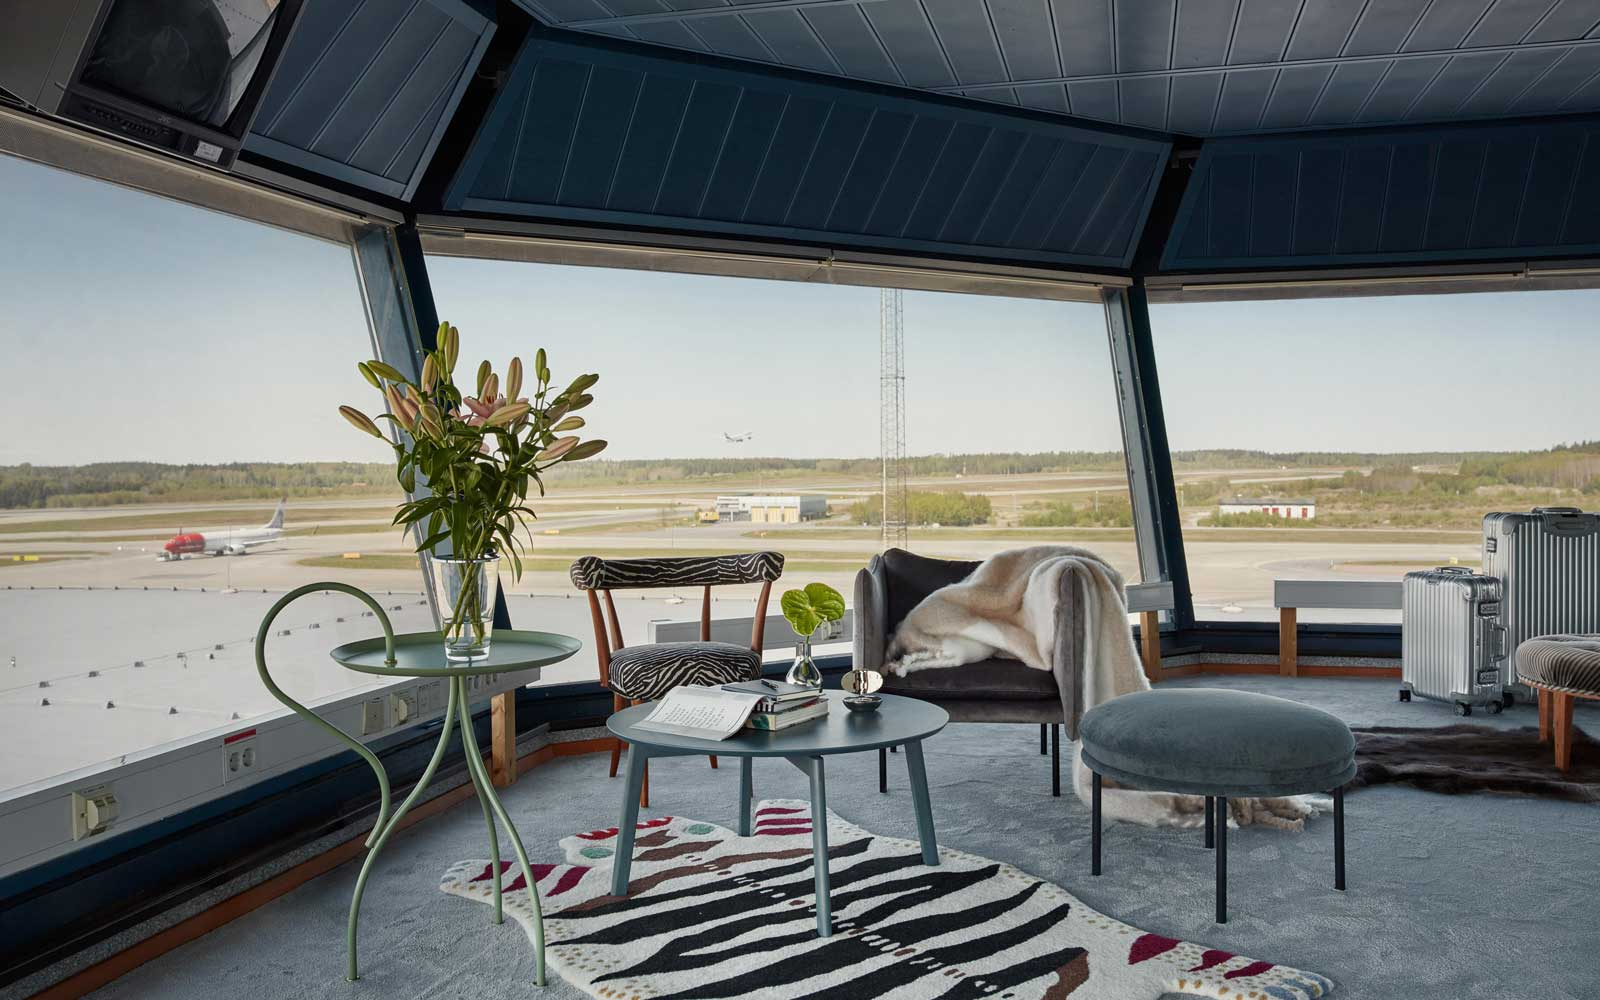 This Luxury Air Traffic Control Tower Will Make You Want to Sleep at the Airport